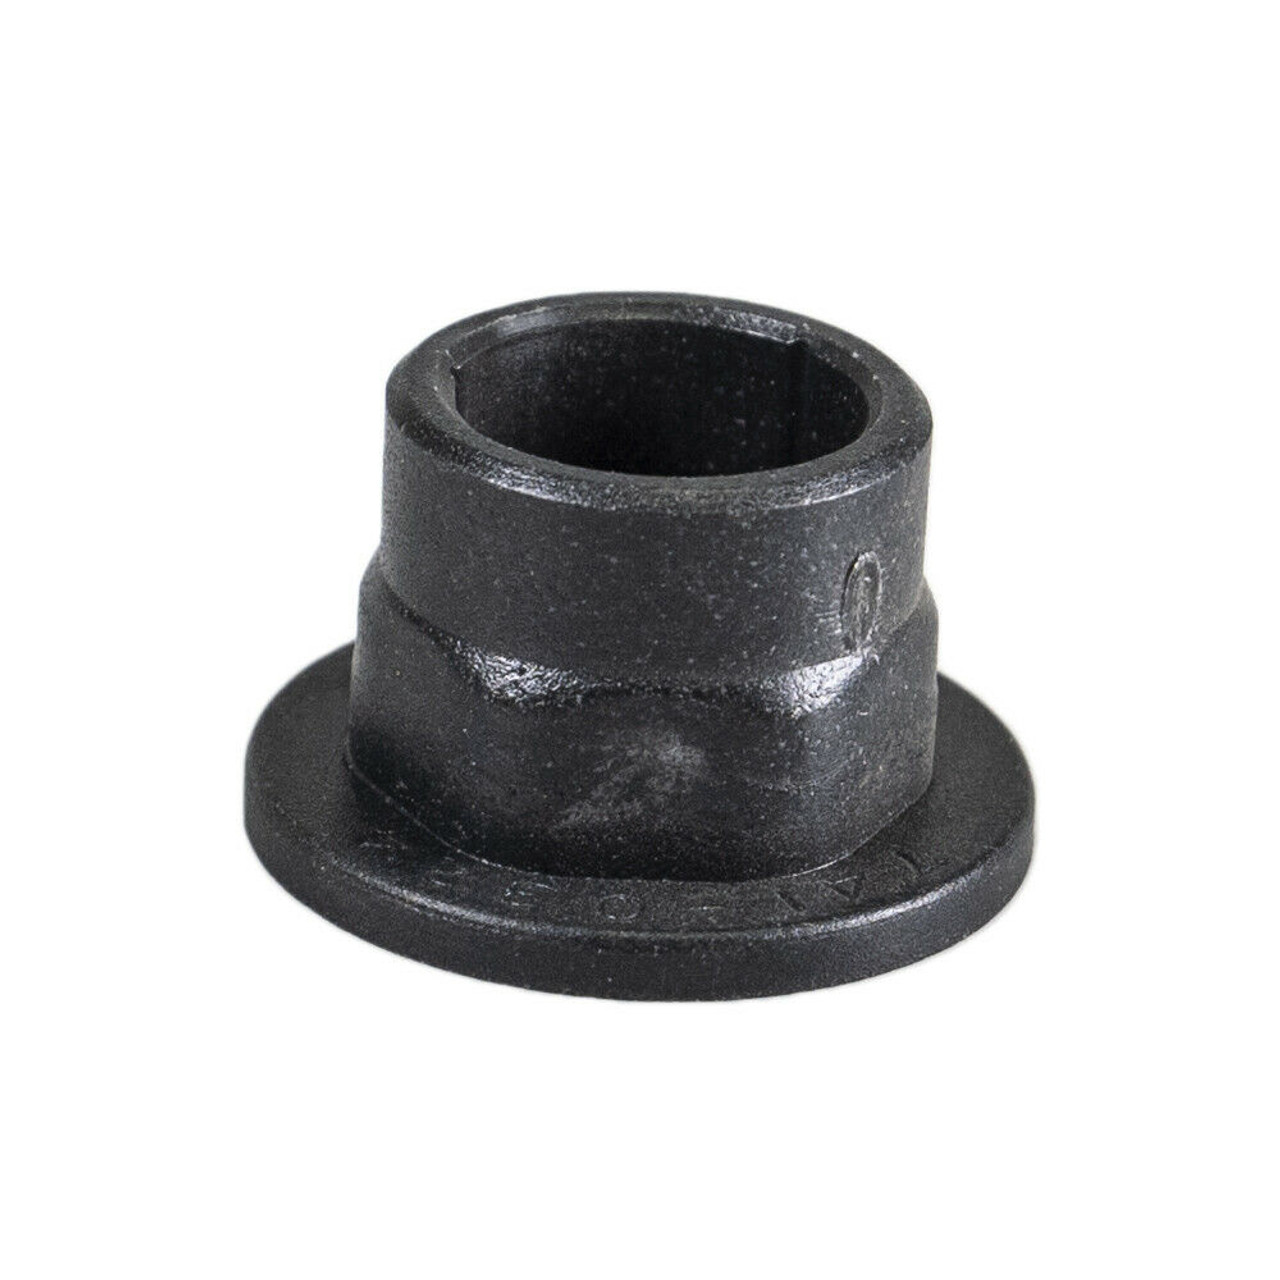 Flange Bushing Bearing for MTD 741-0324, 741-0324A, 941-0324, 941-0324A